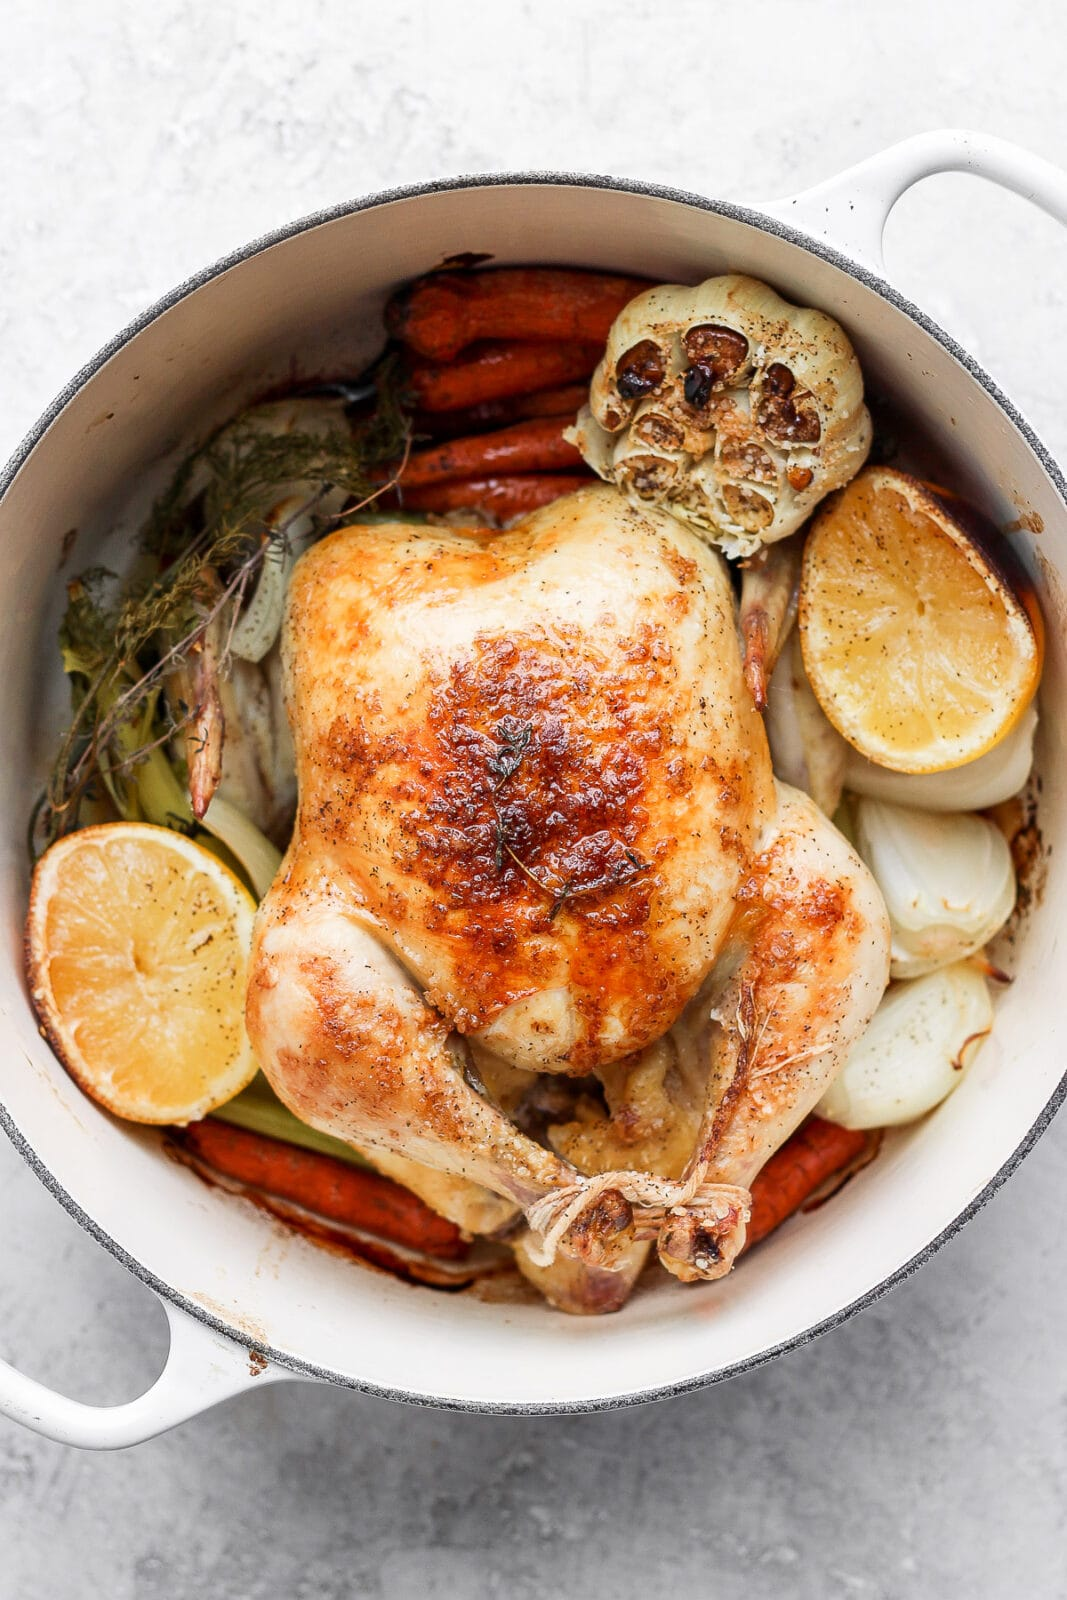 Roasted chicken with lemon.